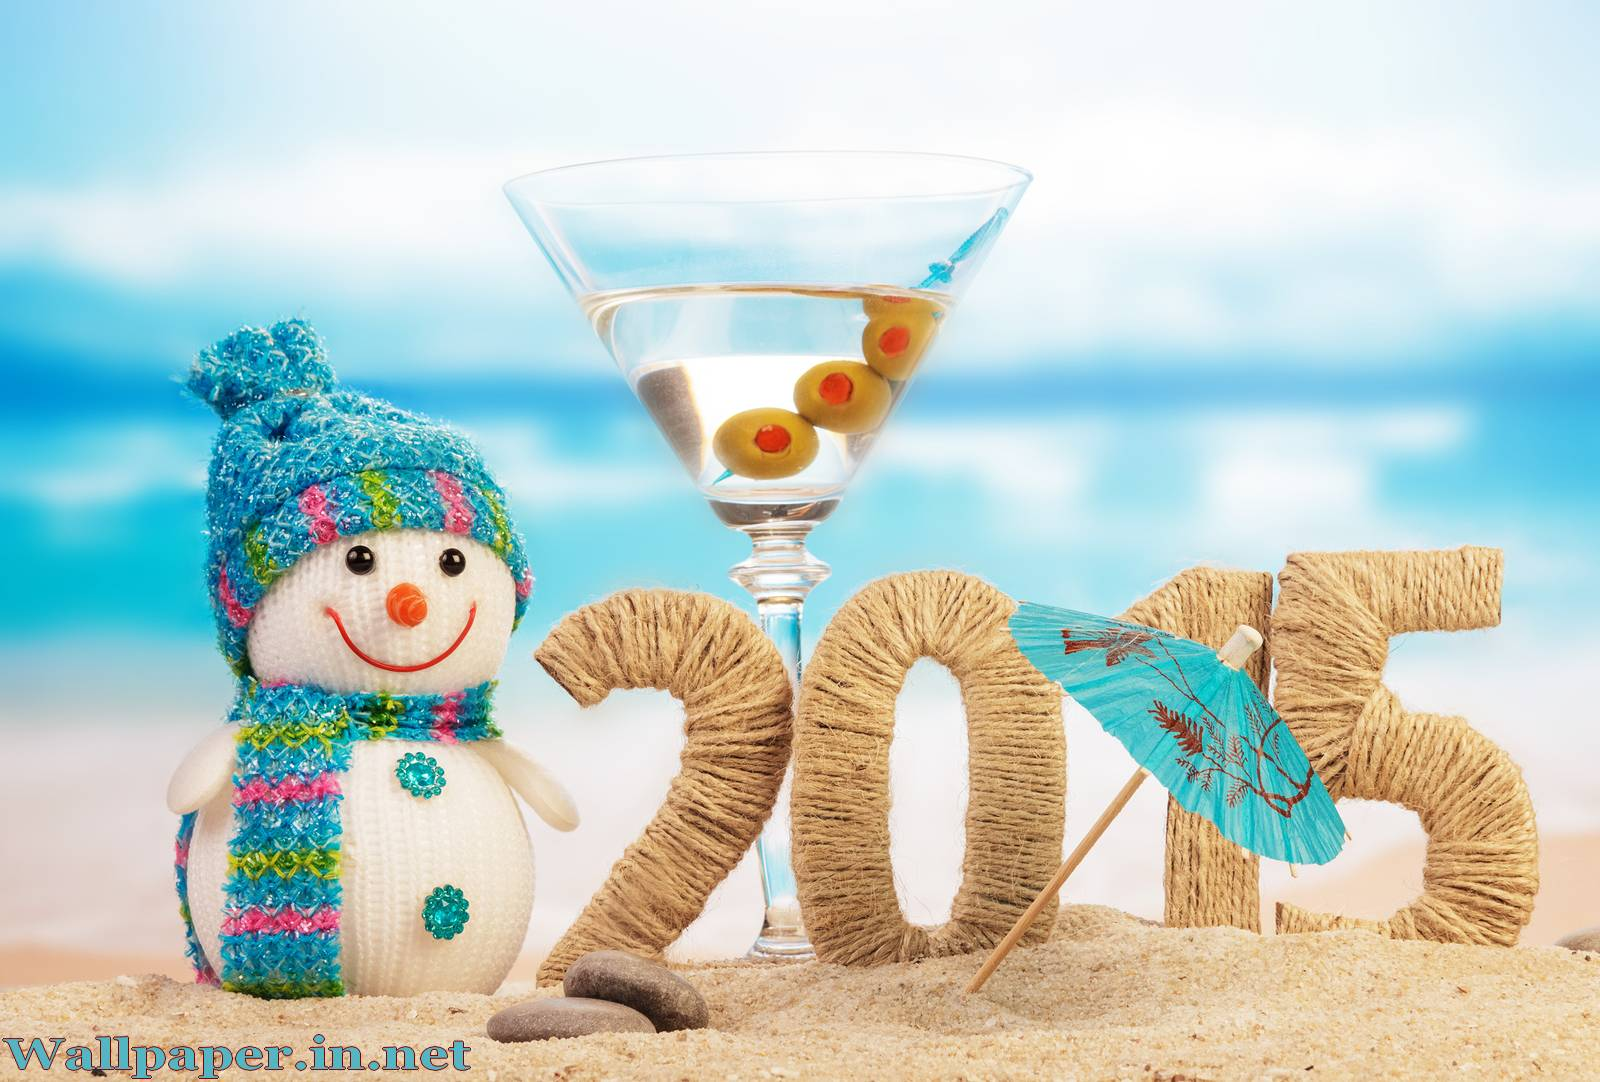 Wallpaper download new year 2015 - 2015 Happy New Year Images Free Download Hd Background Wallpapers